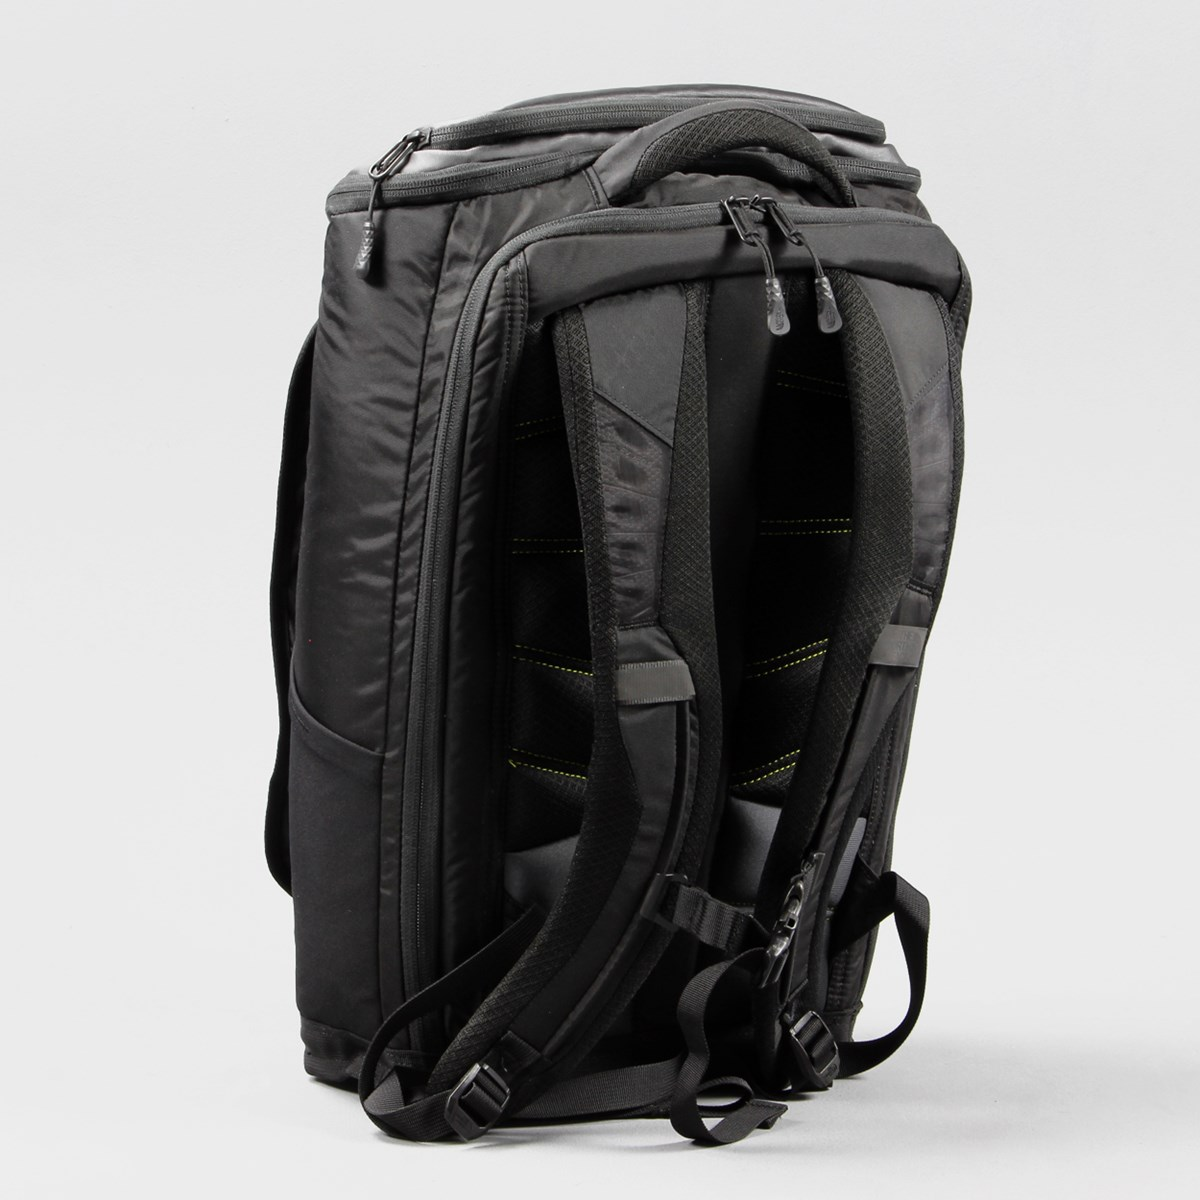 the north face fuse box charged bag black battery pack rucksack the fuse box charged 25 litre pack in black from the north face uses a removable joey t55 battery pack to charge your phone and tablet whilst you travel